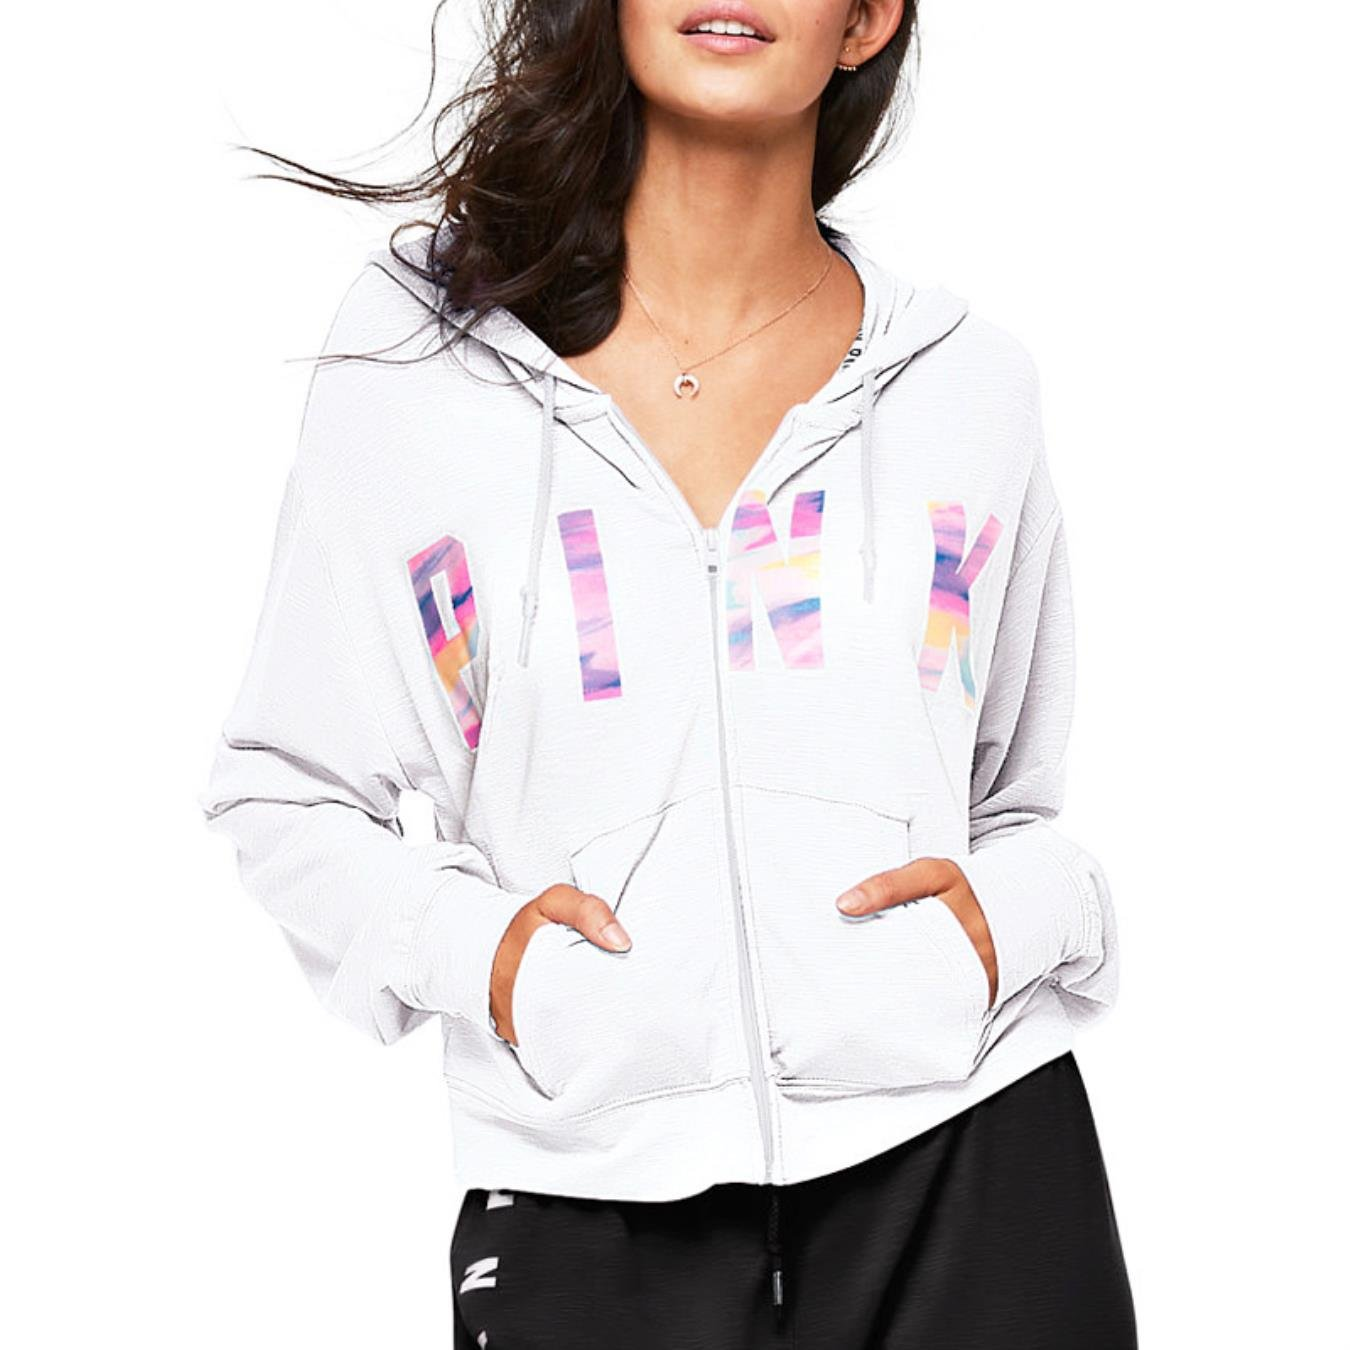 JESRKAS VS Love Pink Secret Hoodies Pullover Women Sweatshirt Tumblr Harajuku Moletom Felpe Sudaderas Truien Dames at Amazon Womens Clothing store: